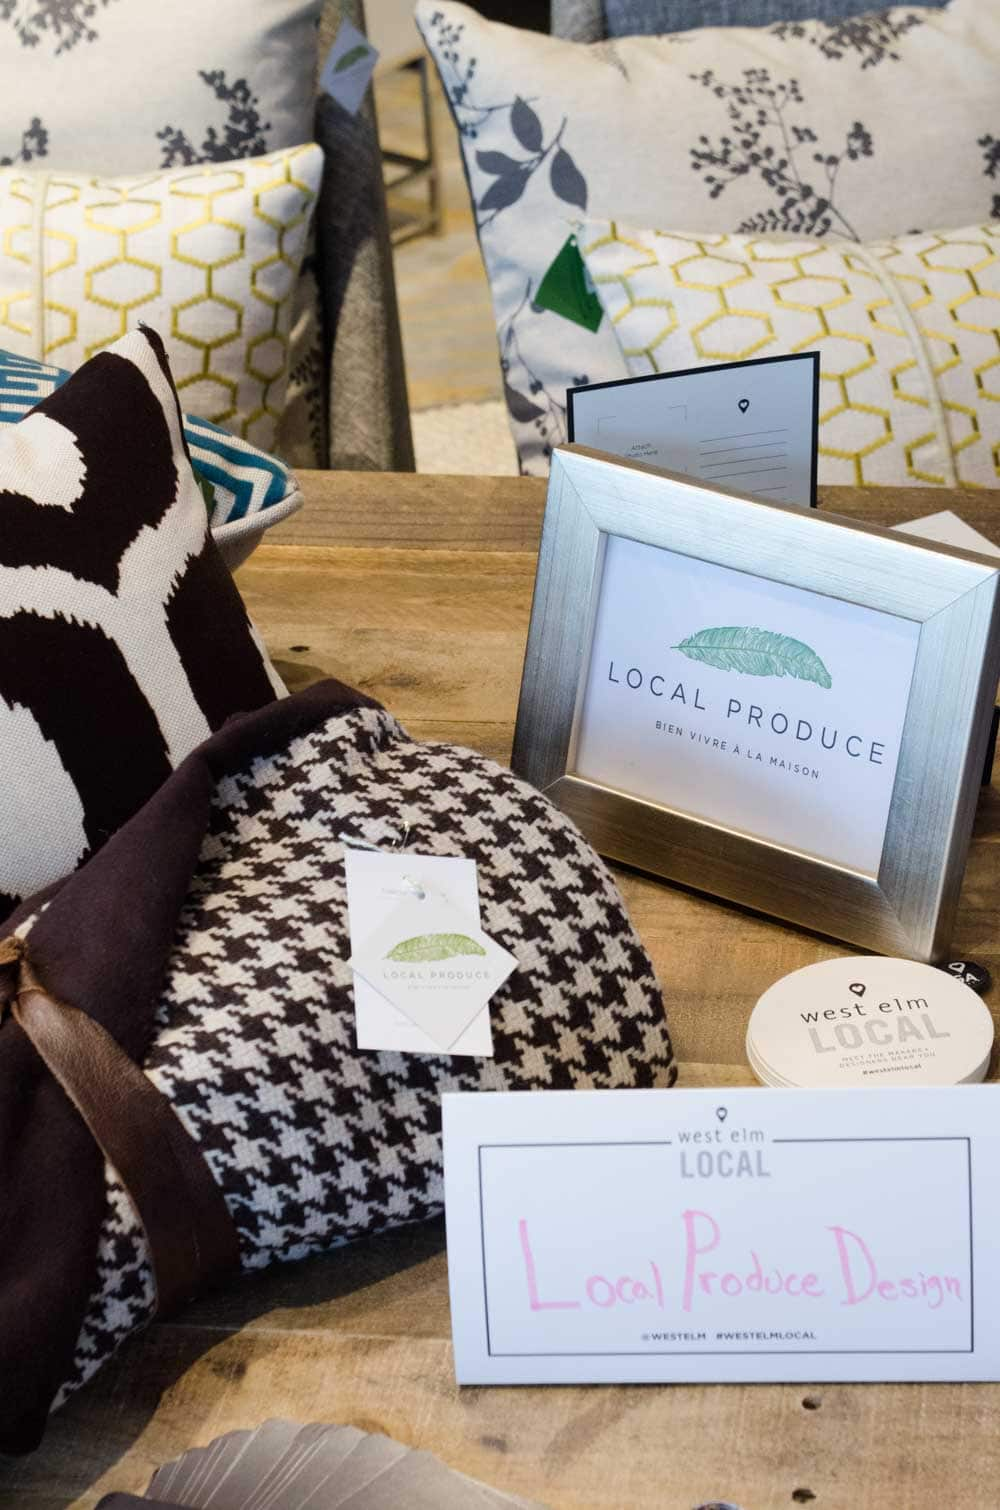 Local Produce Design at West Elm Local Pop-Up